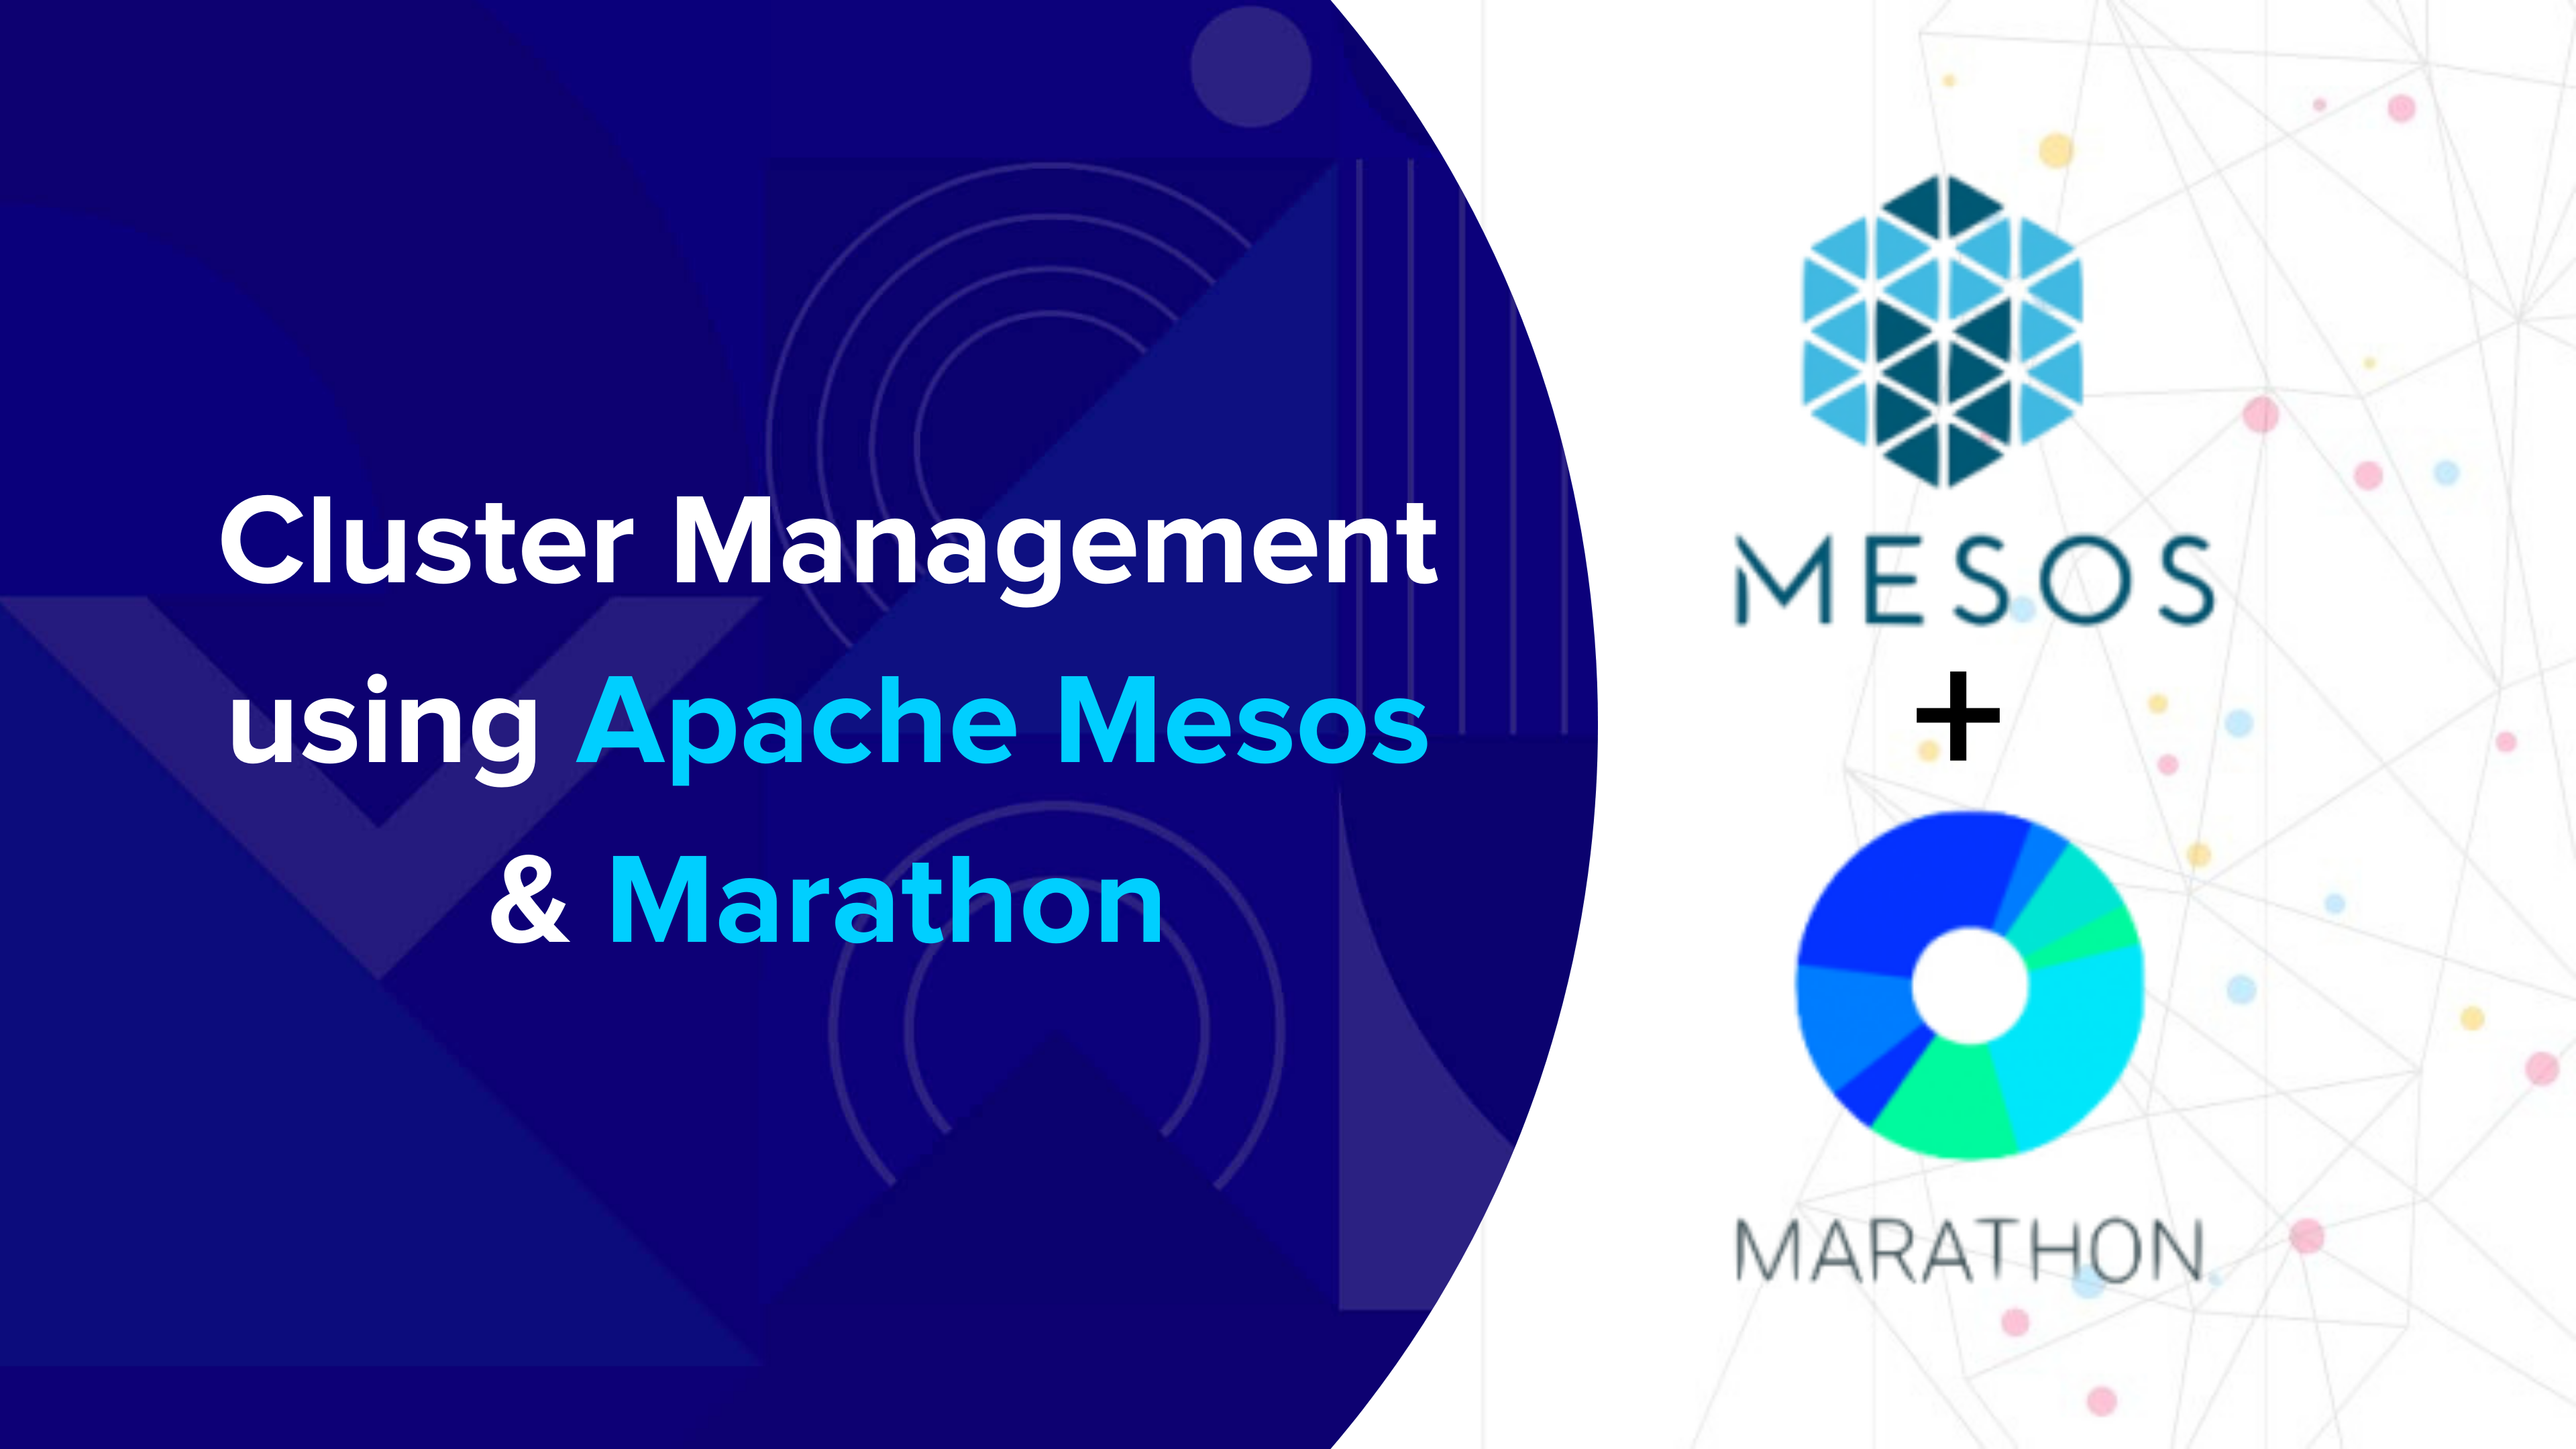 Cluster Management using Apache Mesos & Marathon